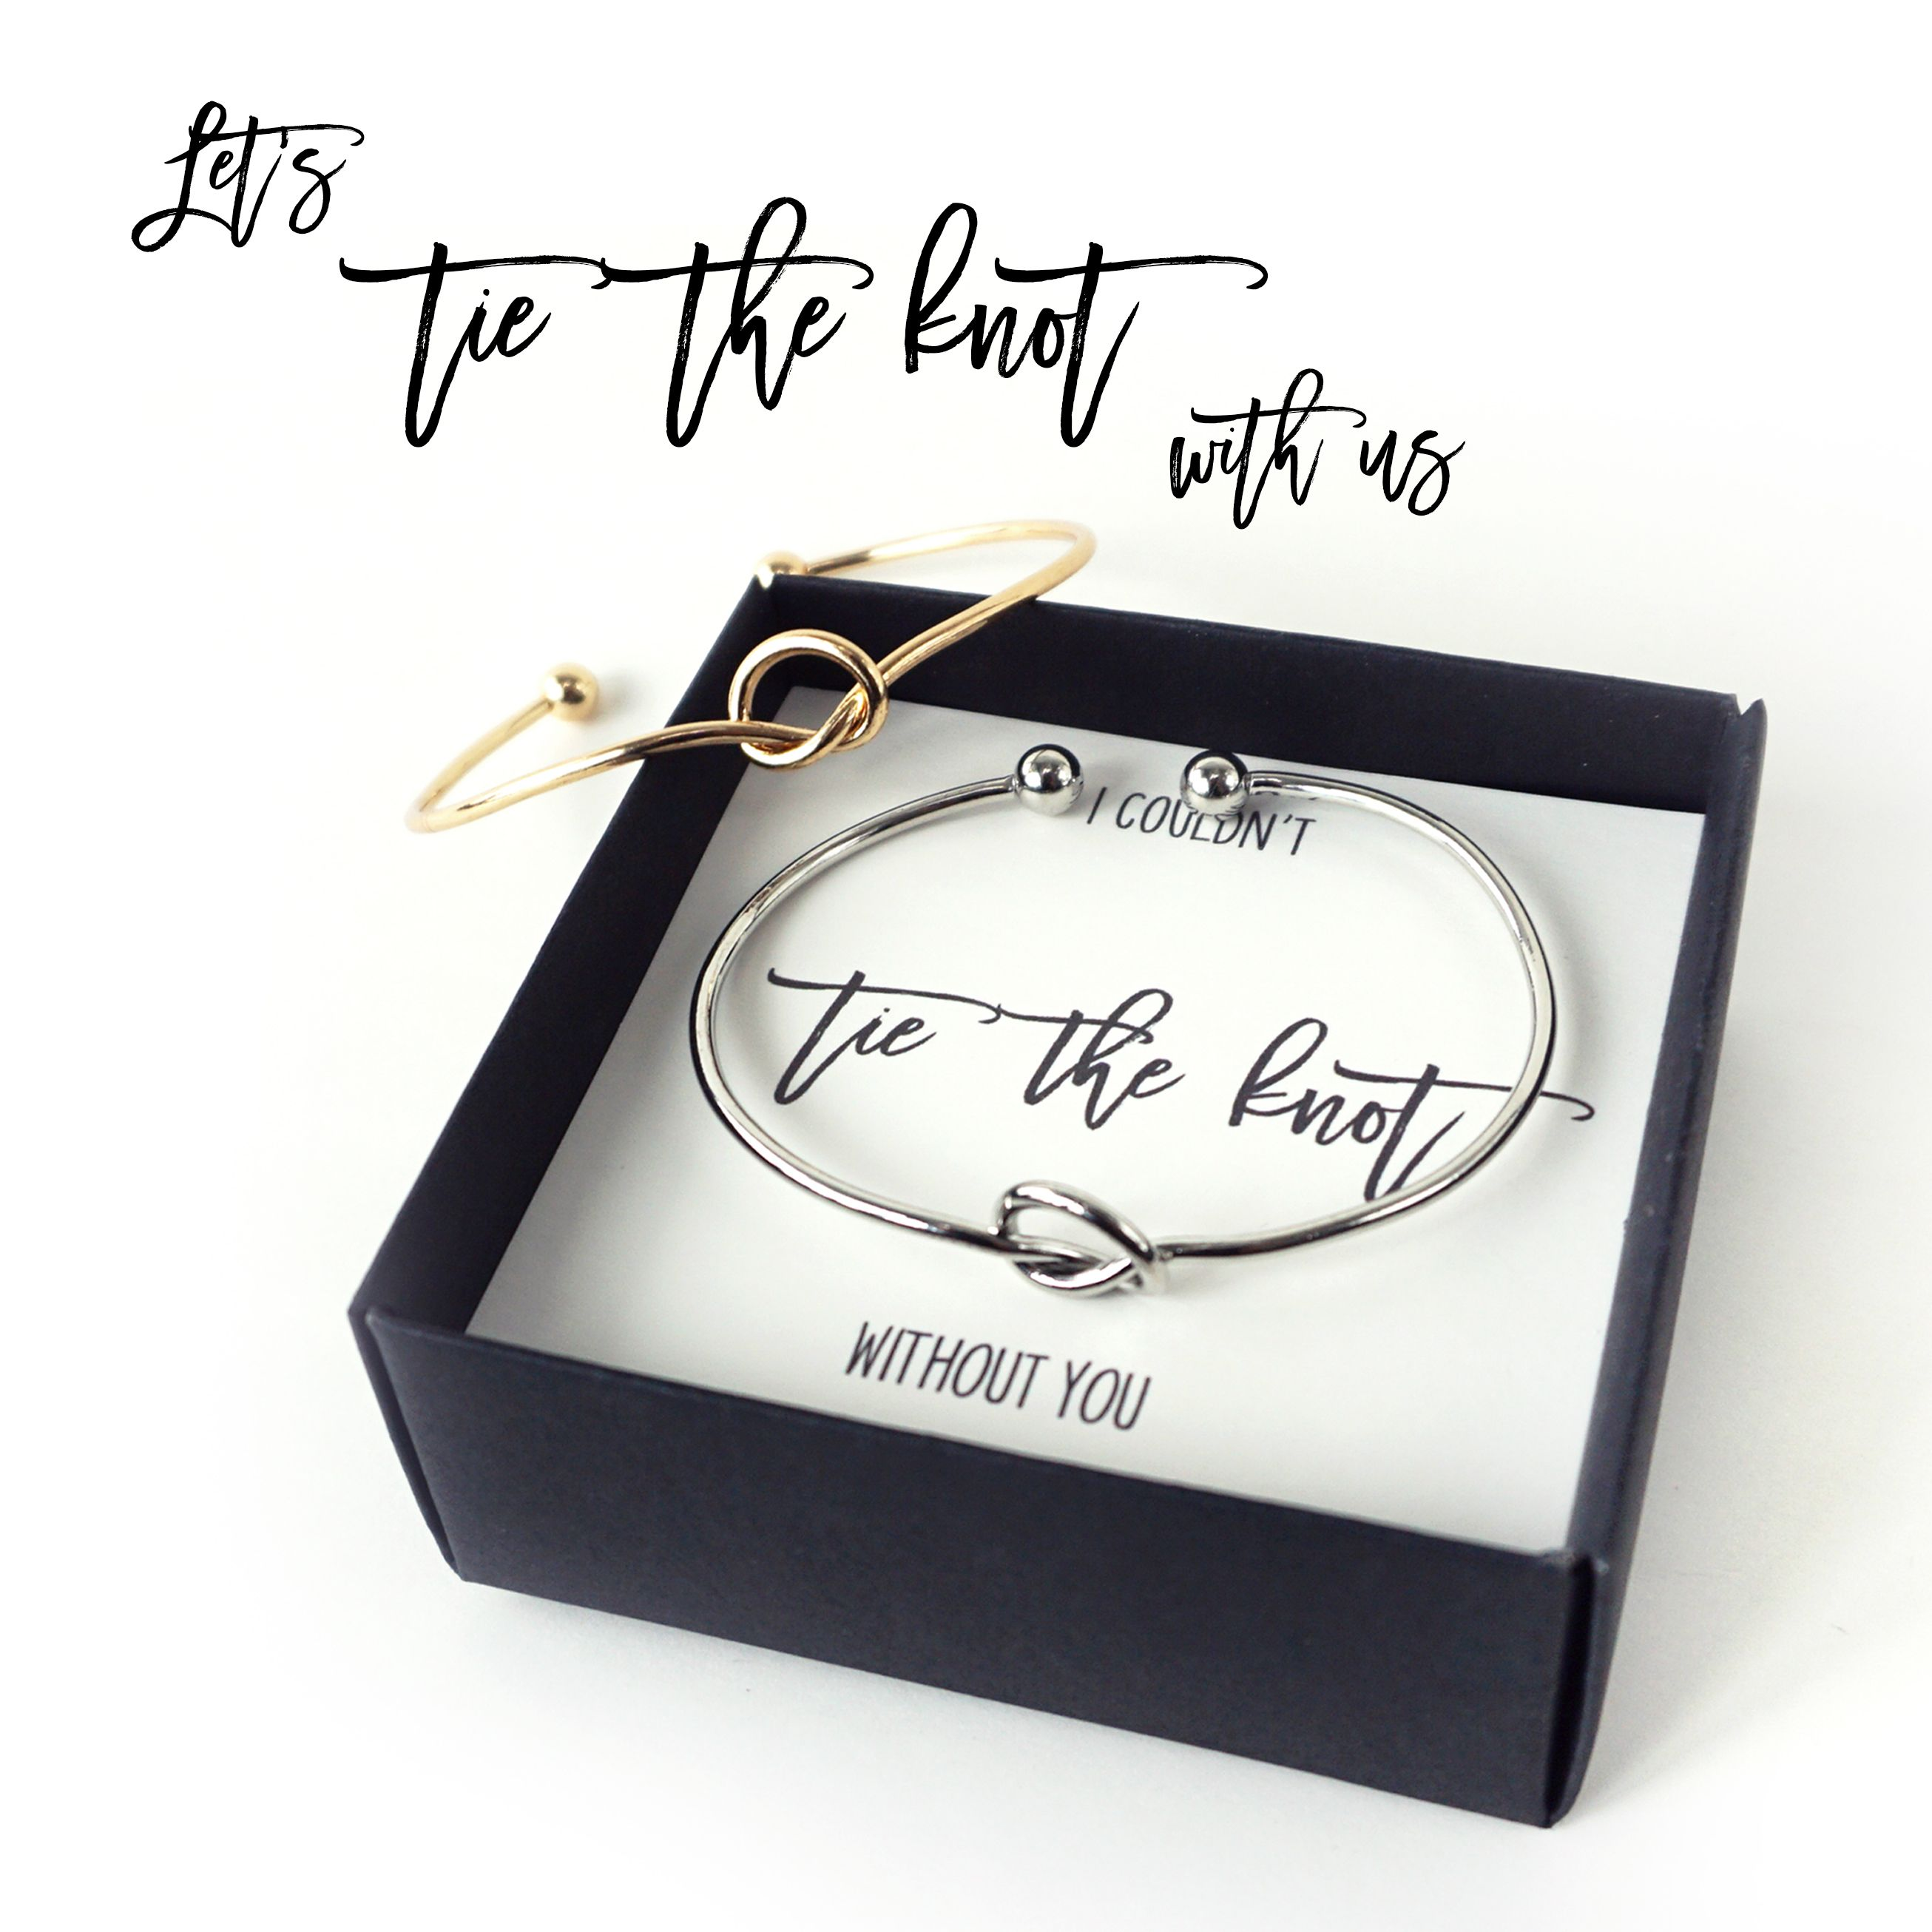 Bridesmaid Gift Idea Get This Knot Bracelet Proposal To Tie The With